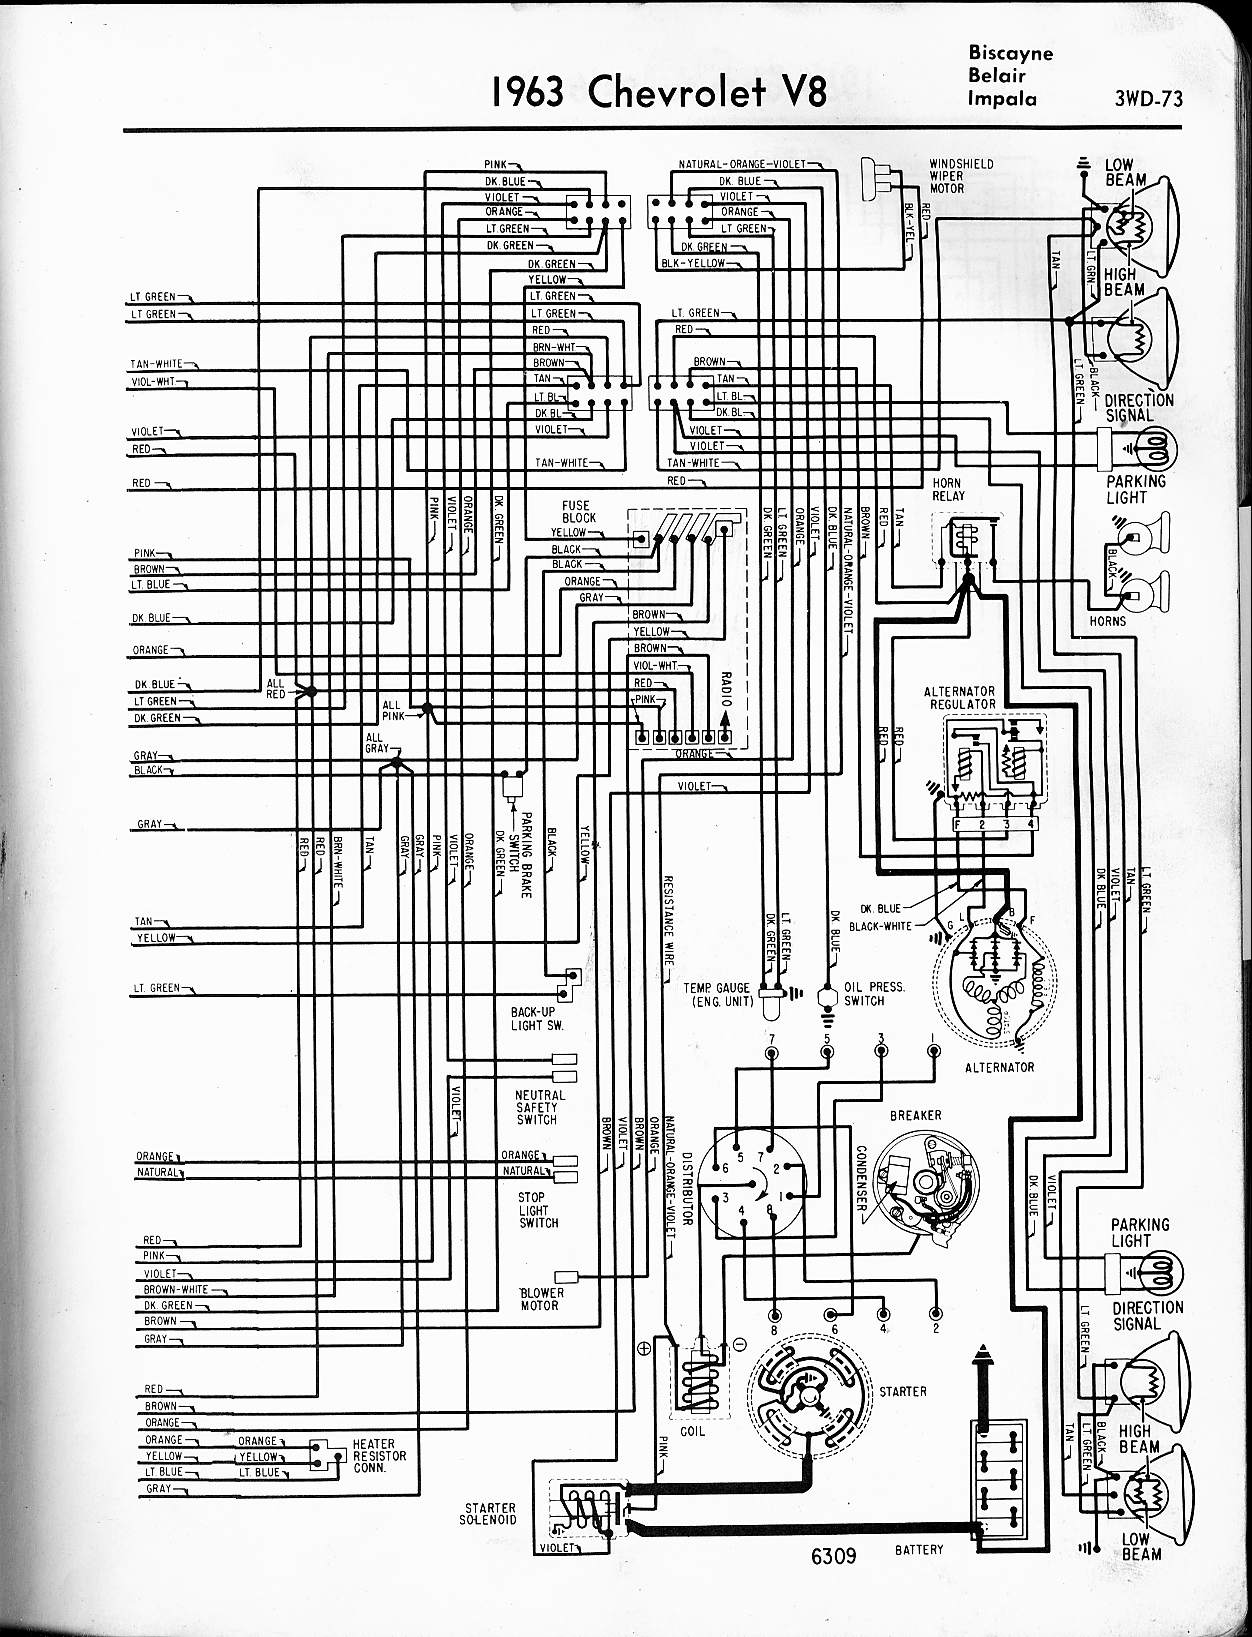 hight resolution of wrg 8096 64 et wiring diagram 64 chevelle wiring diagram 1963 v8 biscayne belair